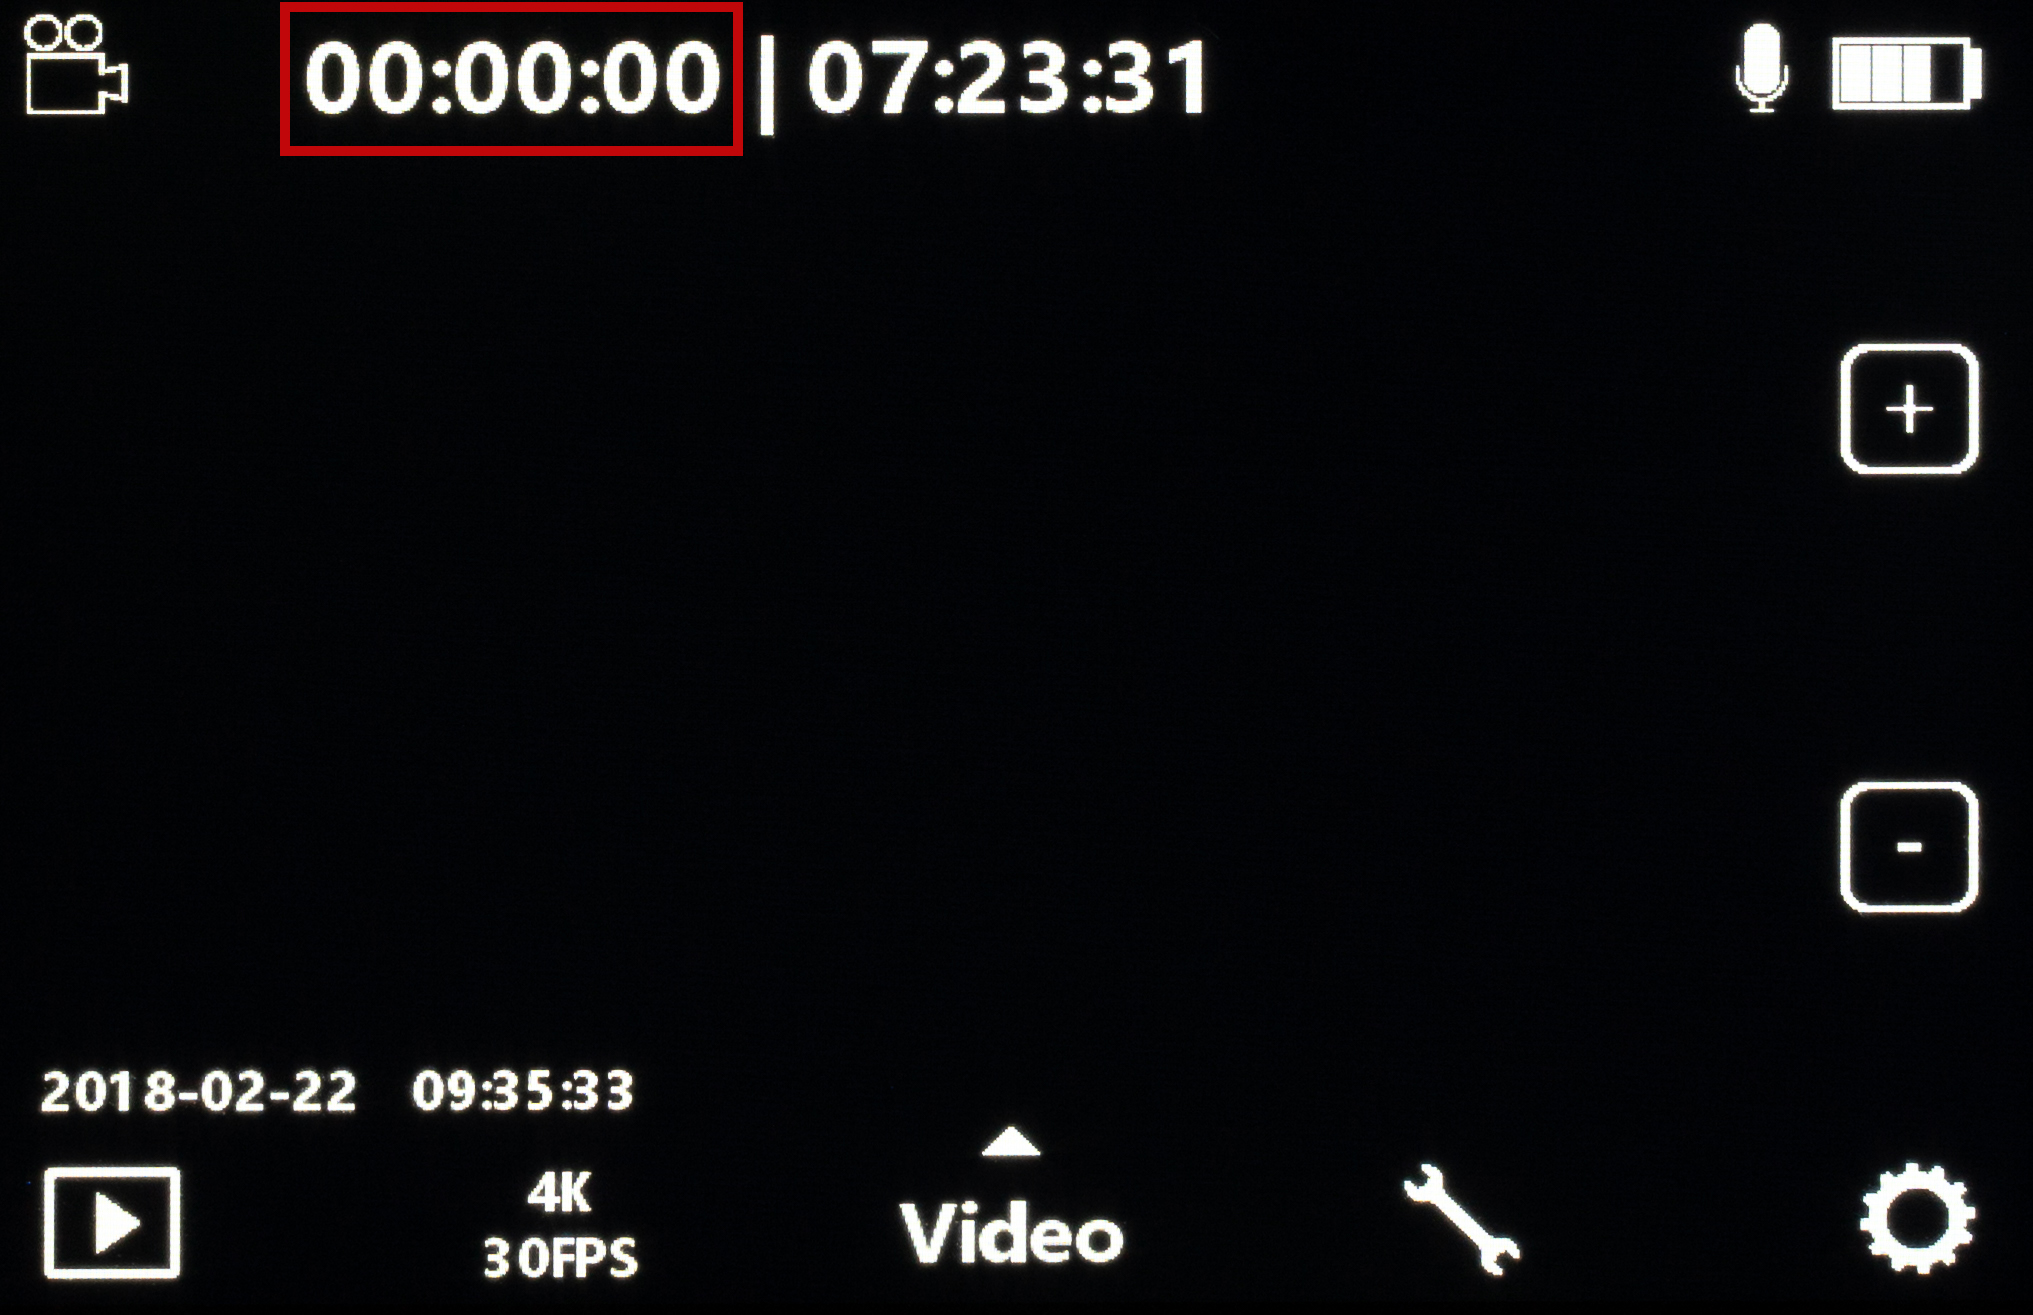 On the top left, this indicates the duration of the video that you have captured.